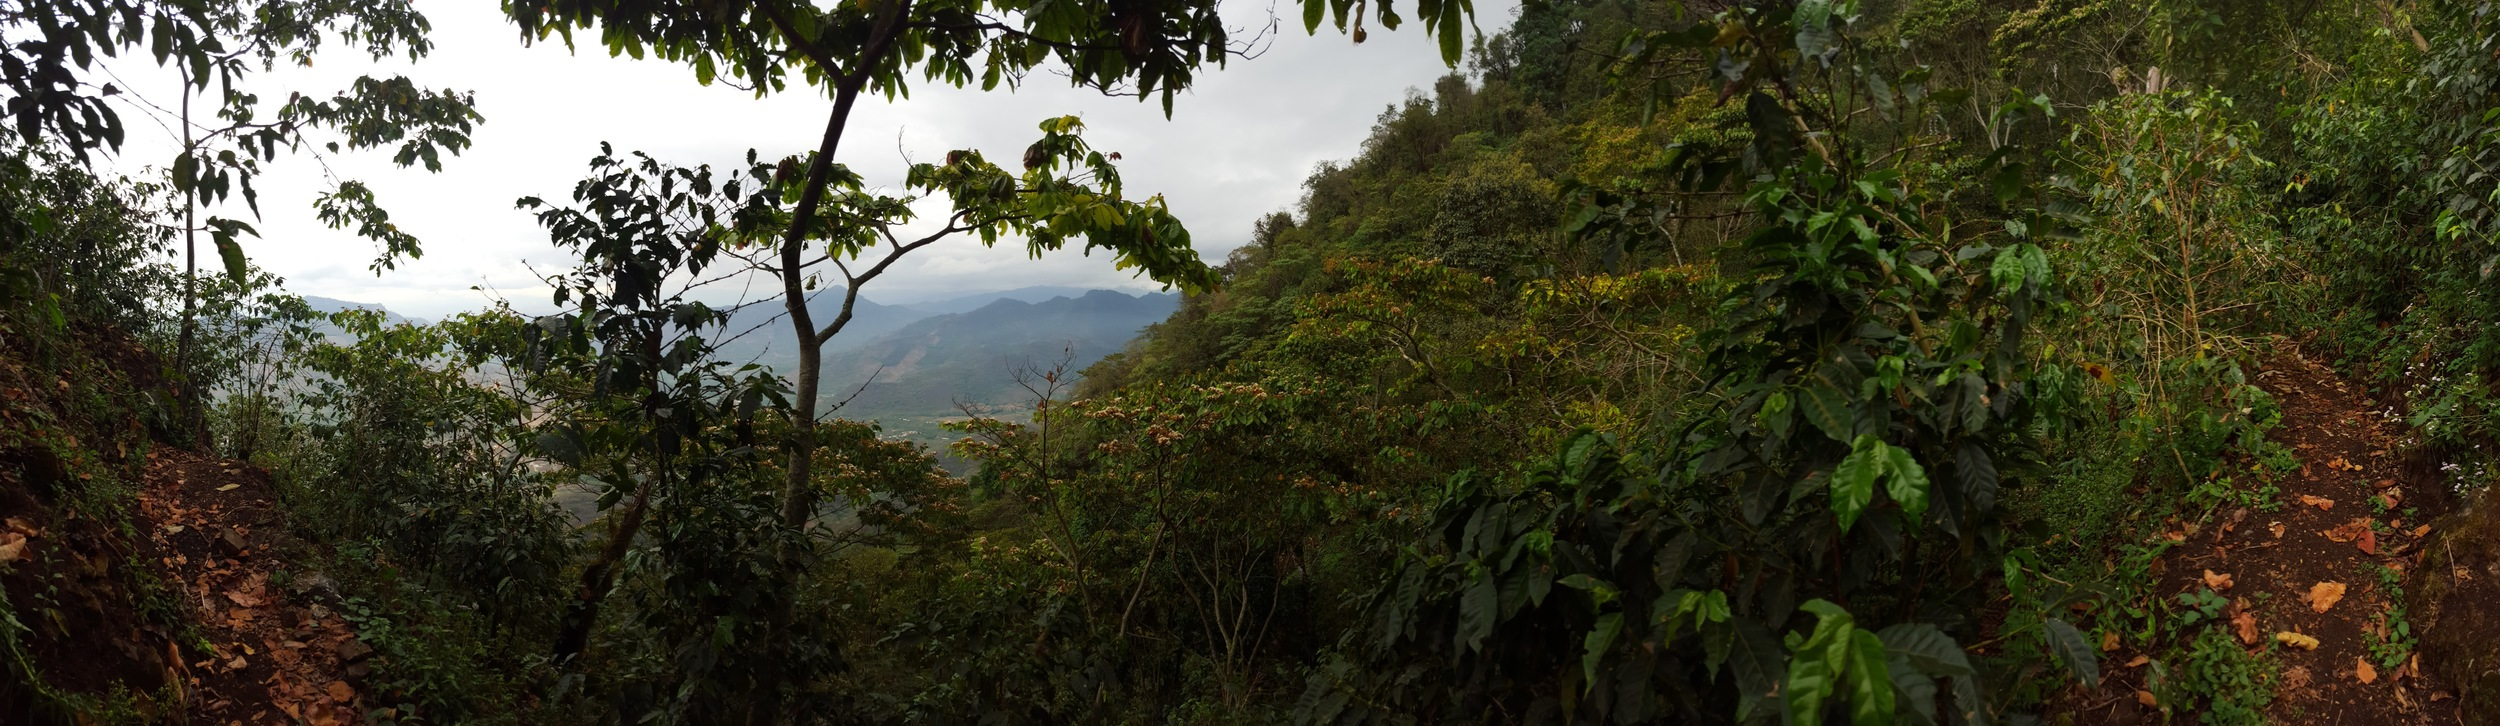 View from the trail to Buena Esperanza, looking down the mountain.